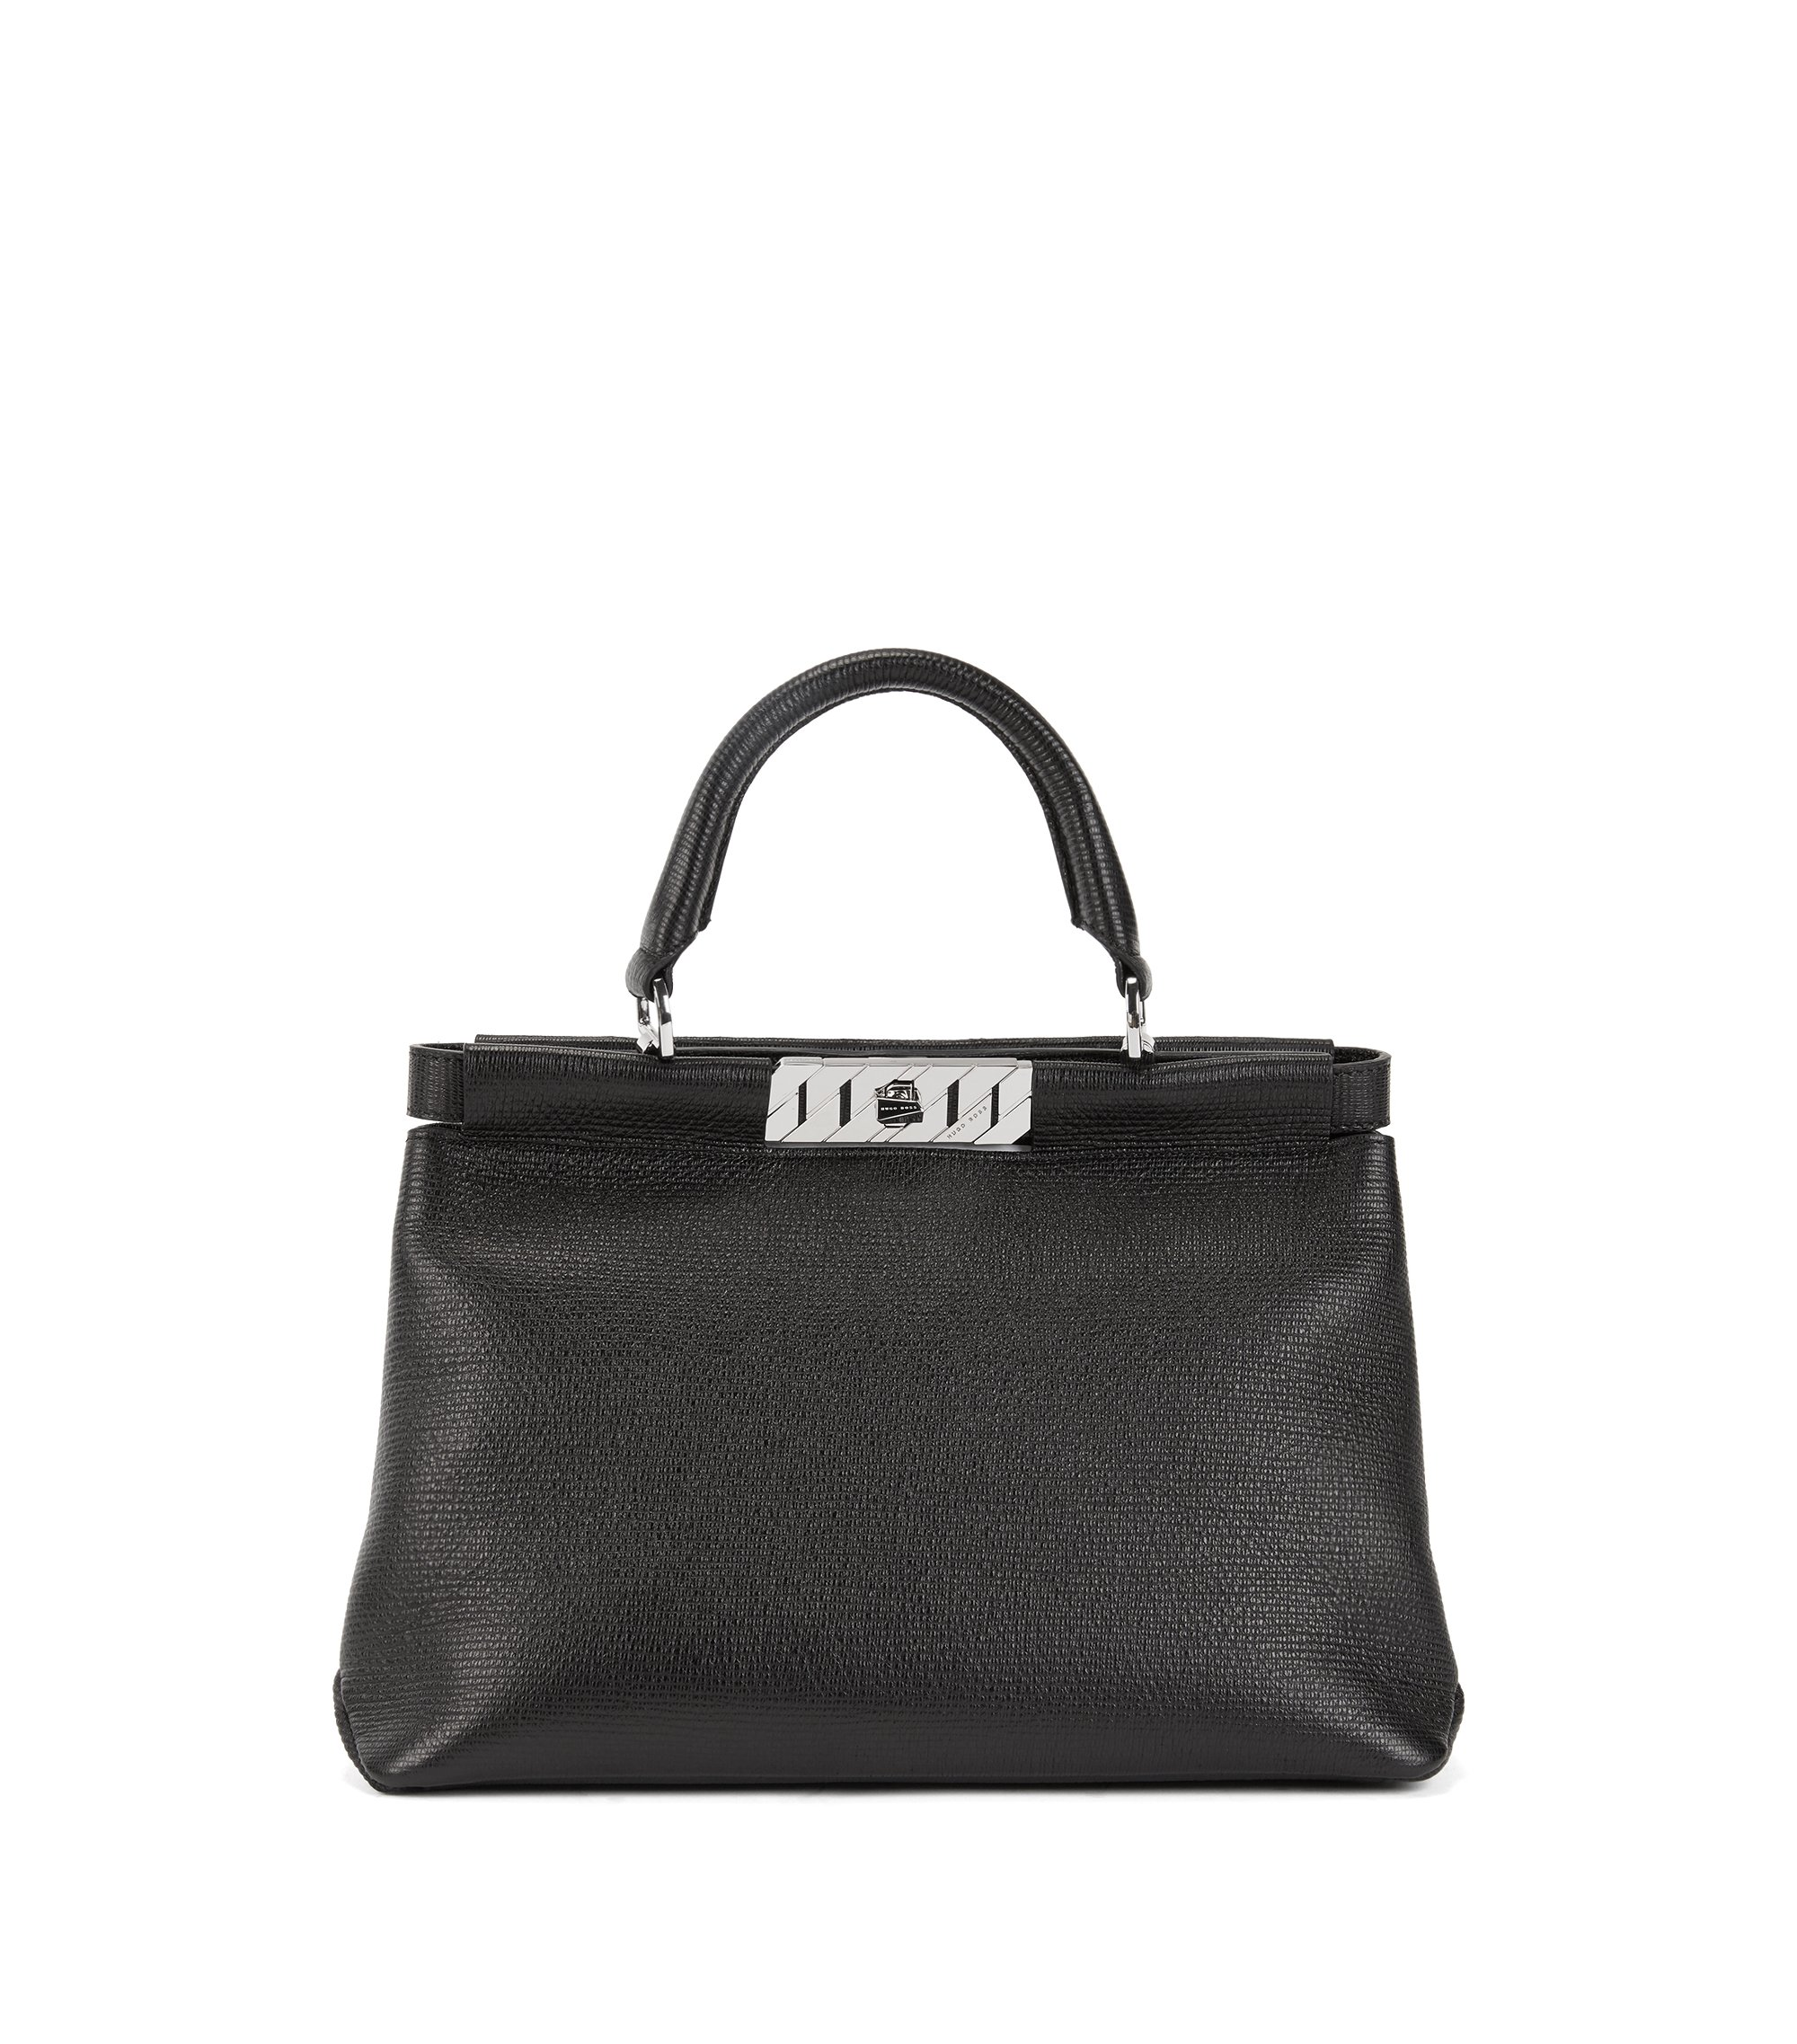 Top-handle tote bag in embossed Italian calf leather, Schwarz